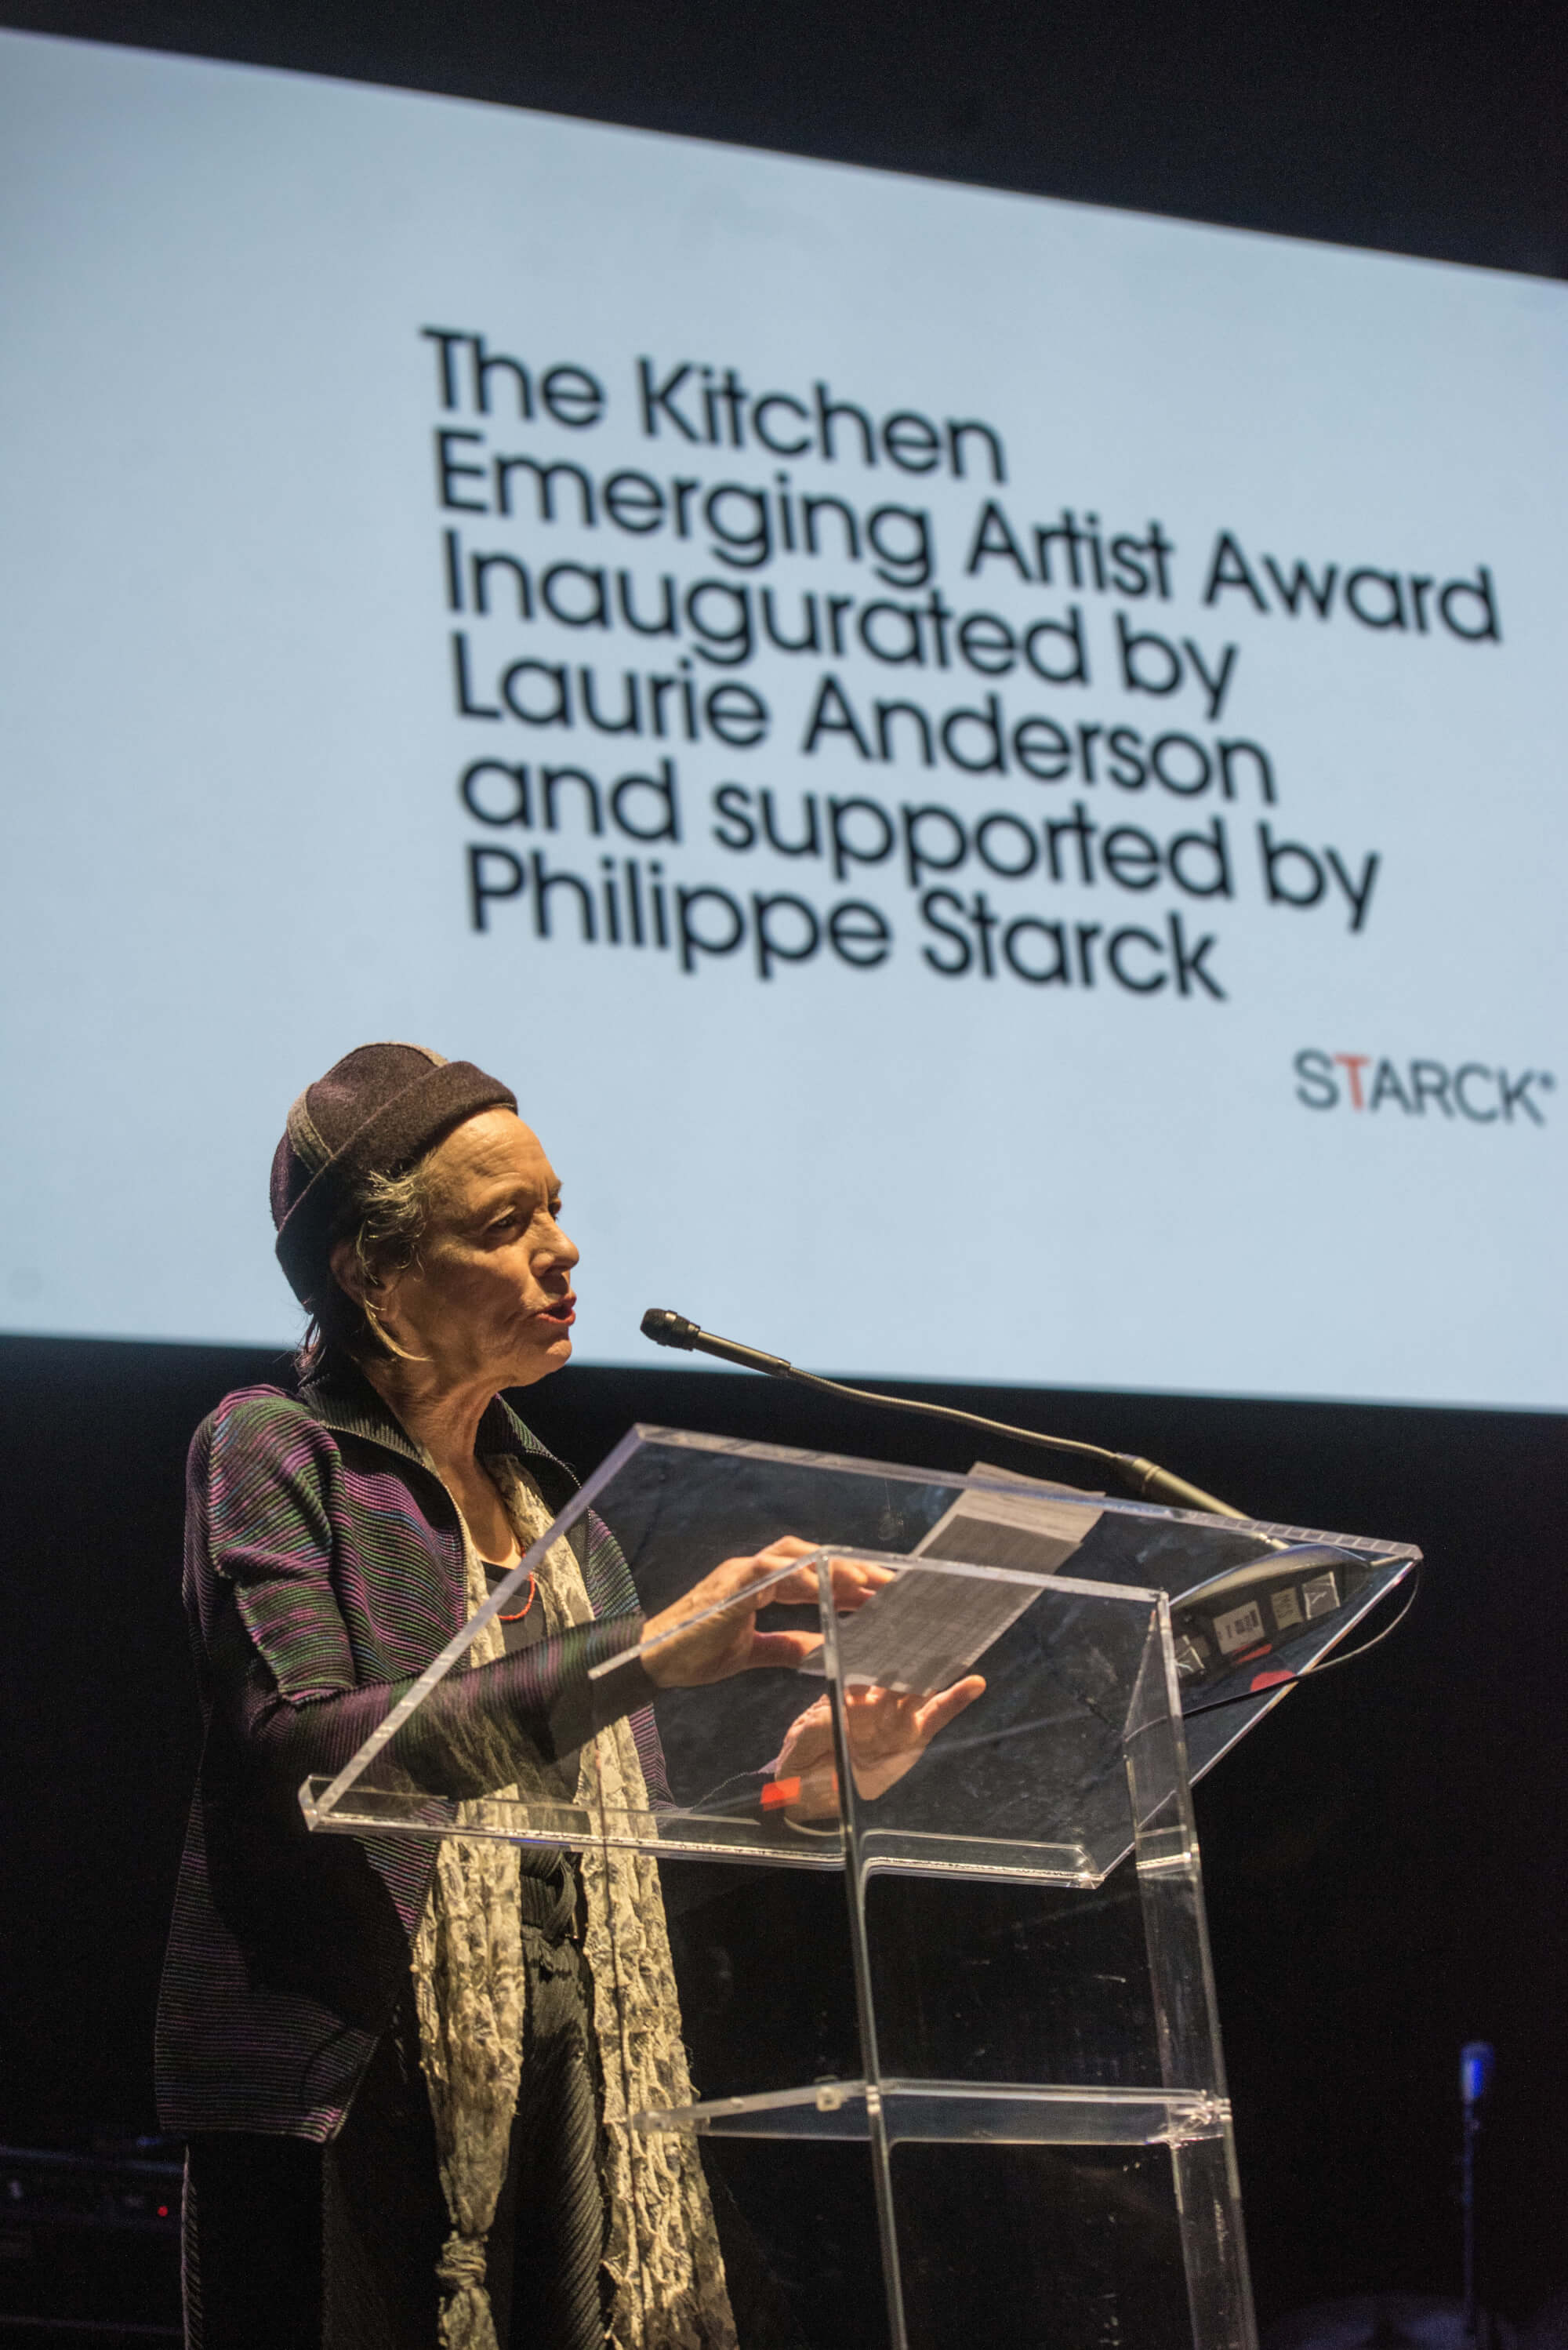 Starck supports the first The Kitchen Emerging Artist Award inaugurated by artist Laurie Anderson